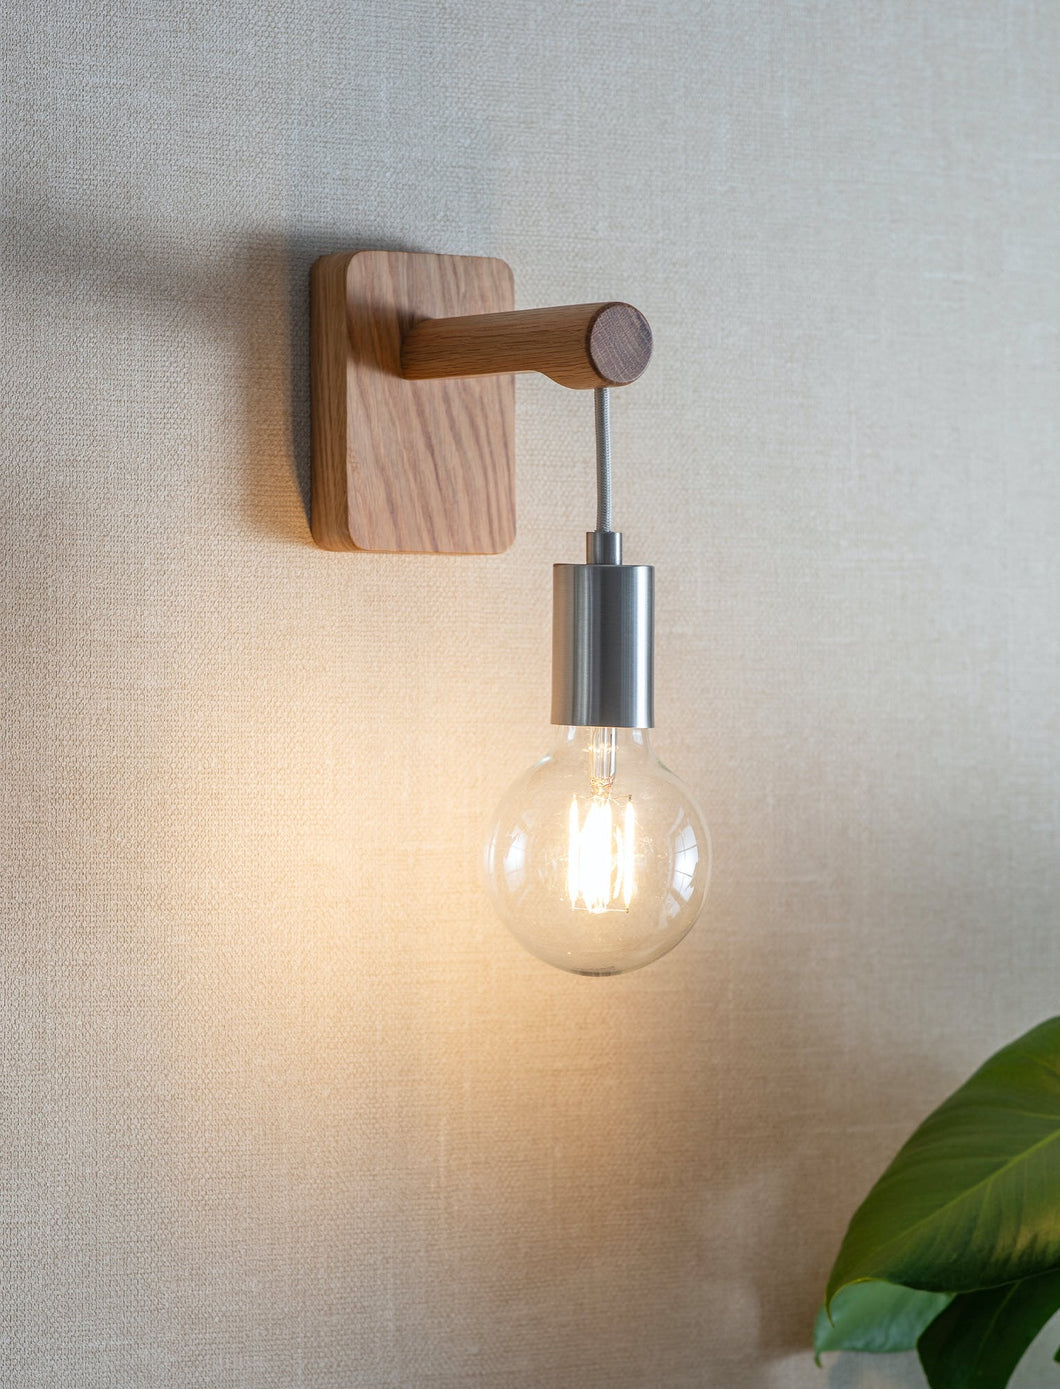 WALL LIGHT WITH BULB